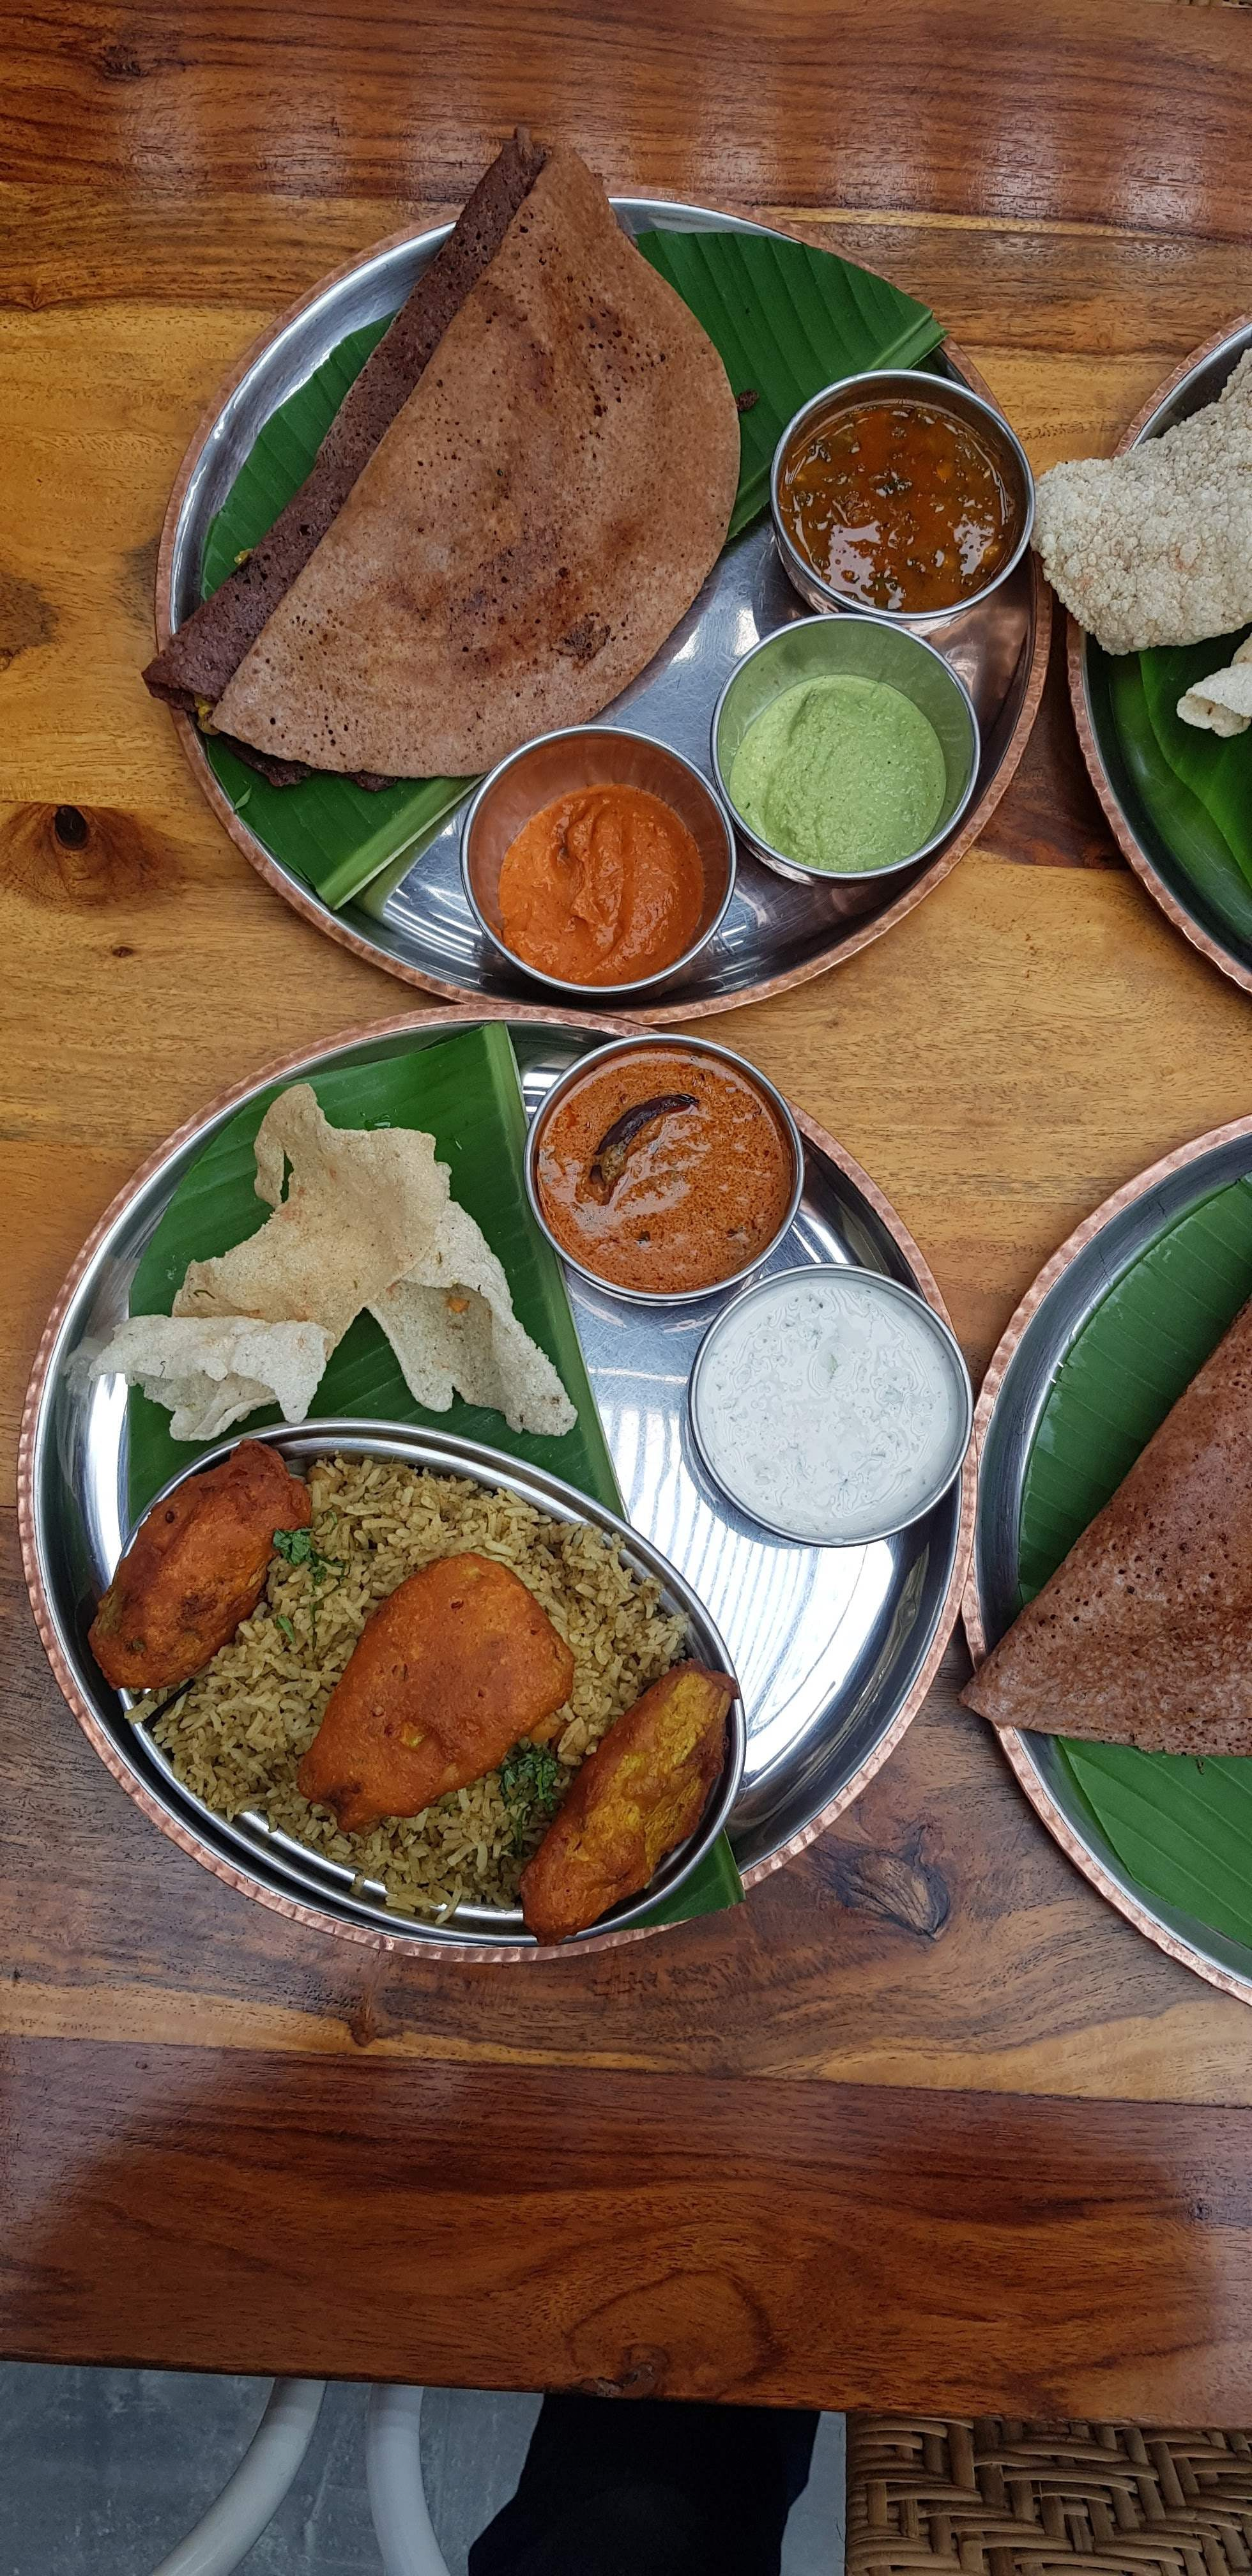 Missing Your Native Food? Check This Place Out